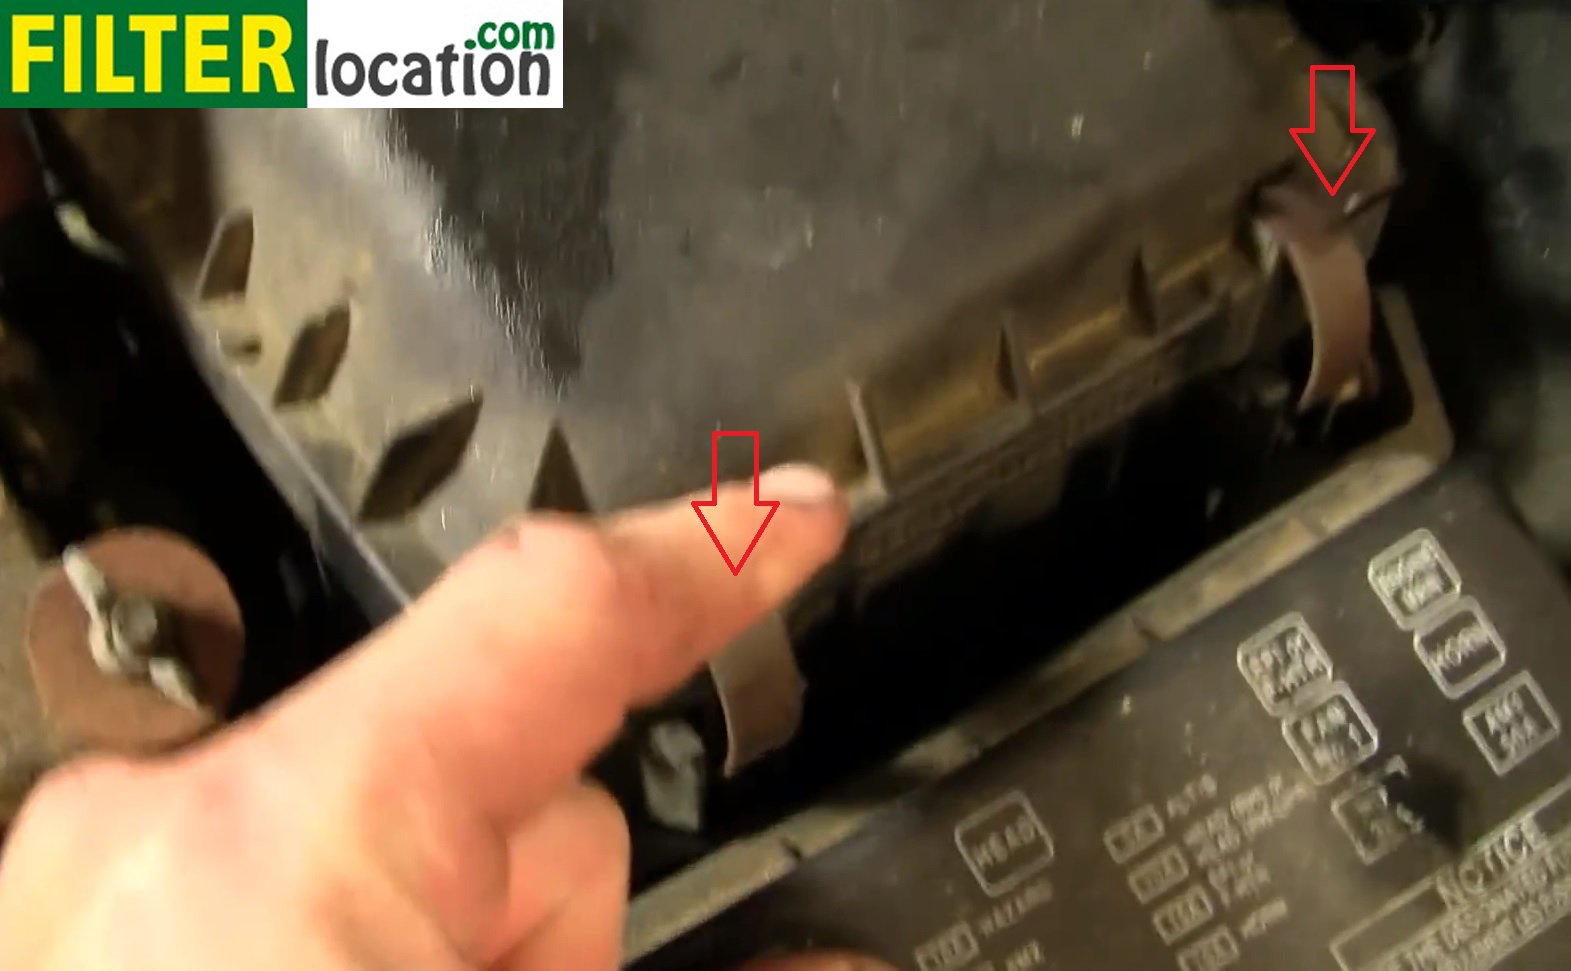 How To Change The Air Filter On Toyota Corolla 1998 2002 Camry Fuel Location Remove Two Metal Tabs Seen In Next Image That Secure Lid Of Box Position Is Marked With Red Arrows